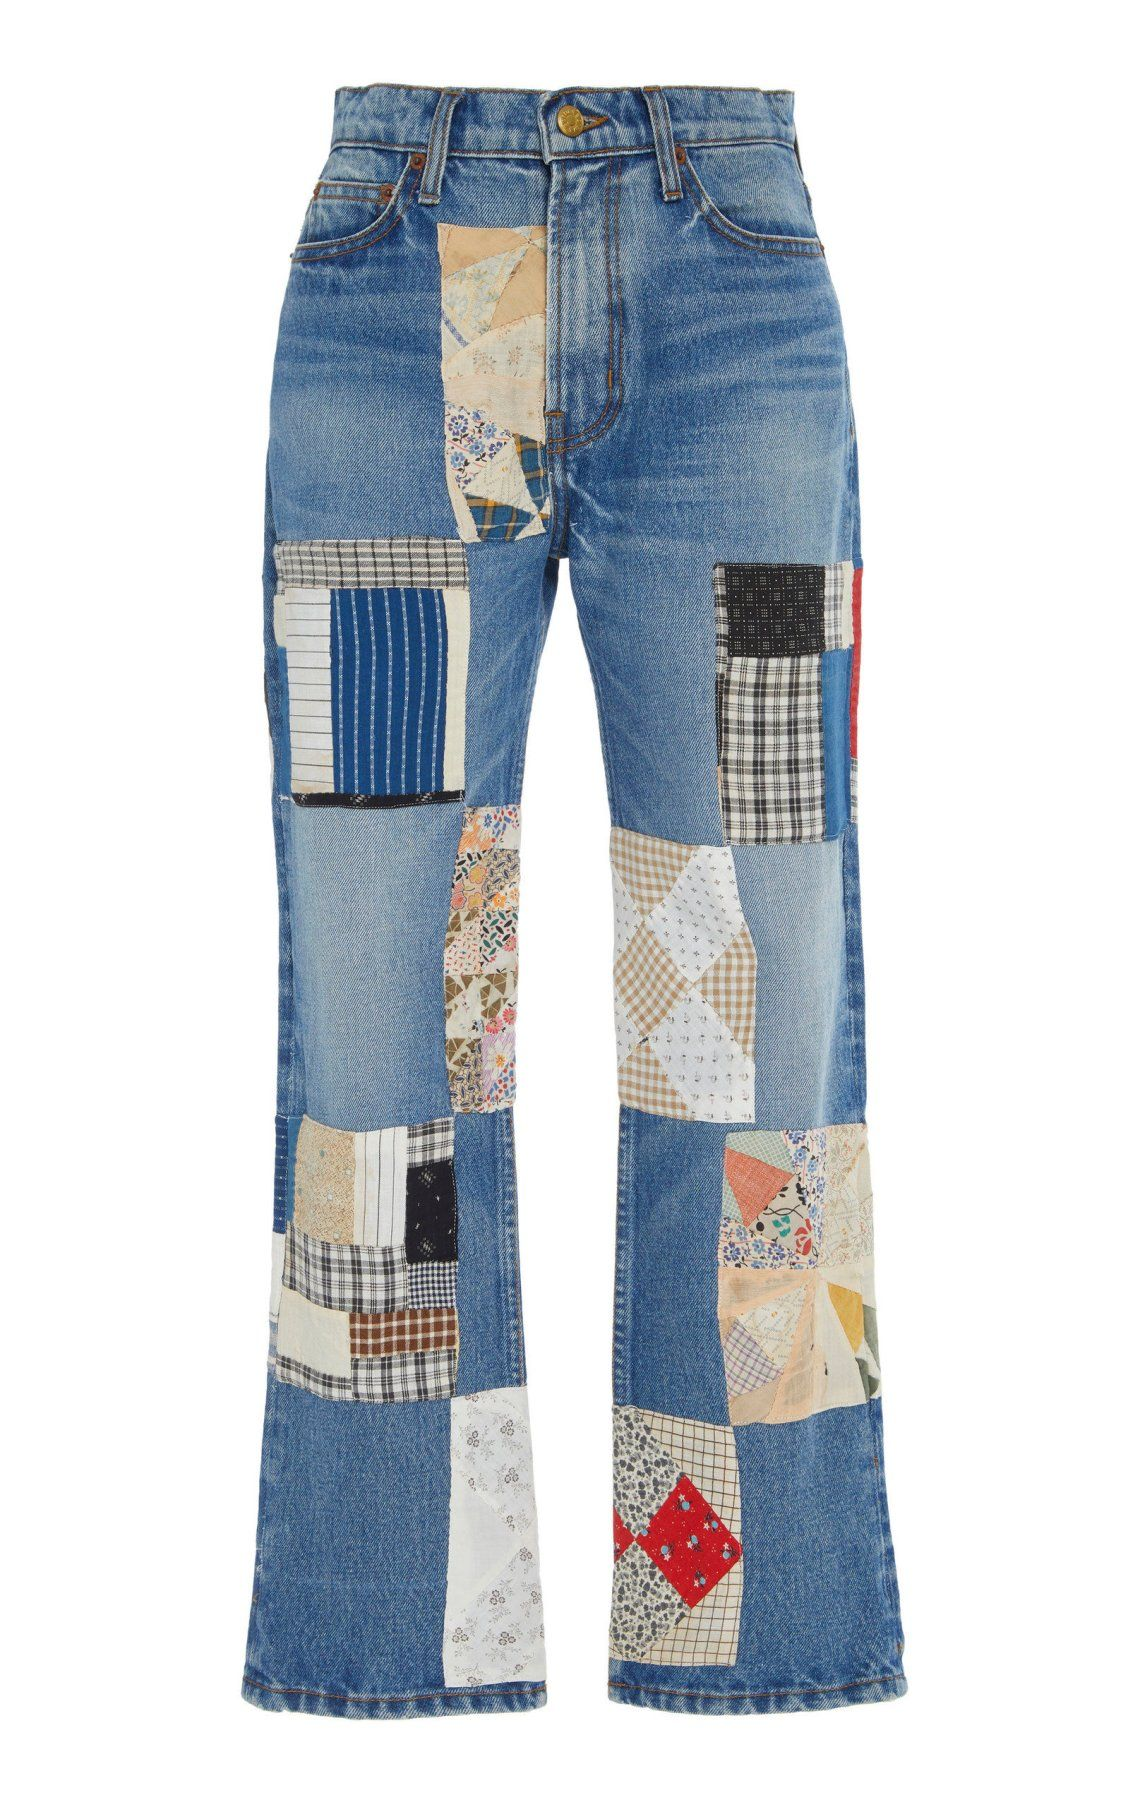 Arts Mid Rise Straight Leg Checkered Patchwork Jeans By B Sides Ss19 Denim Ideas Straight Leg Jeans Upcycled Fashion